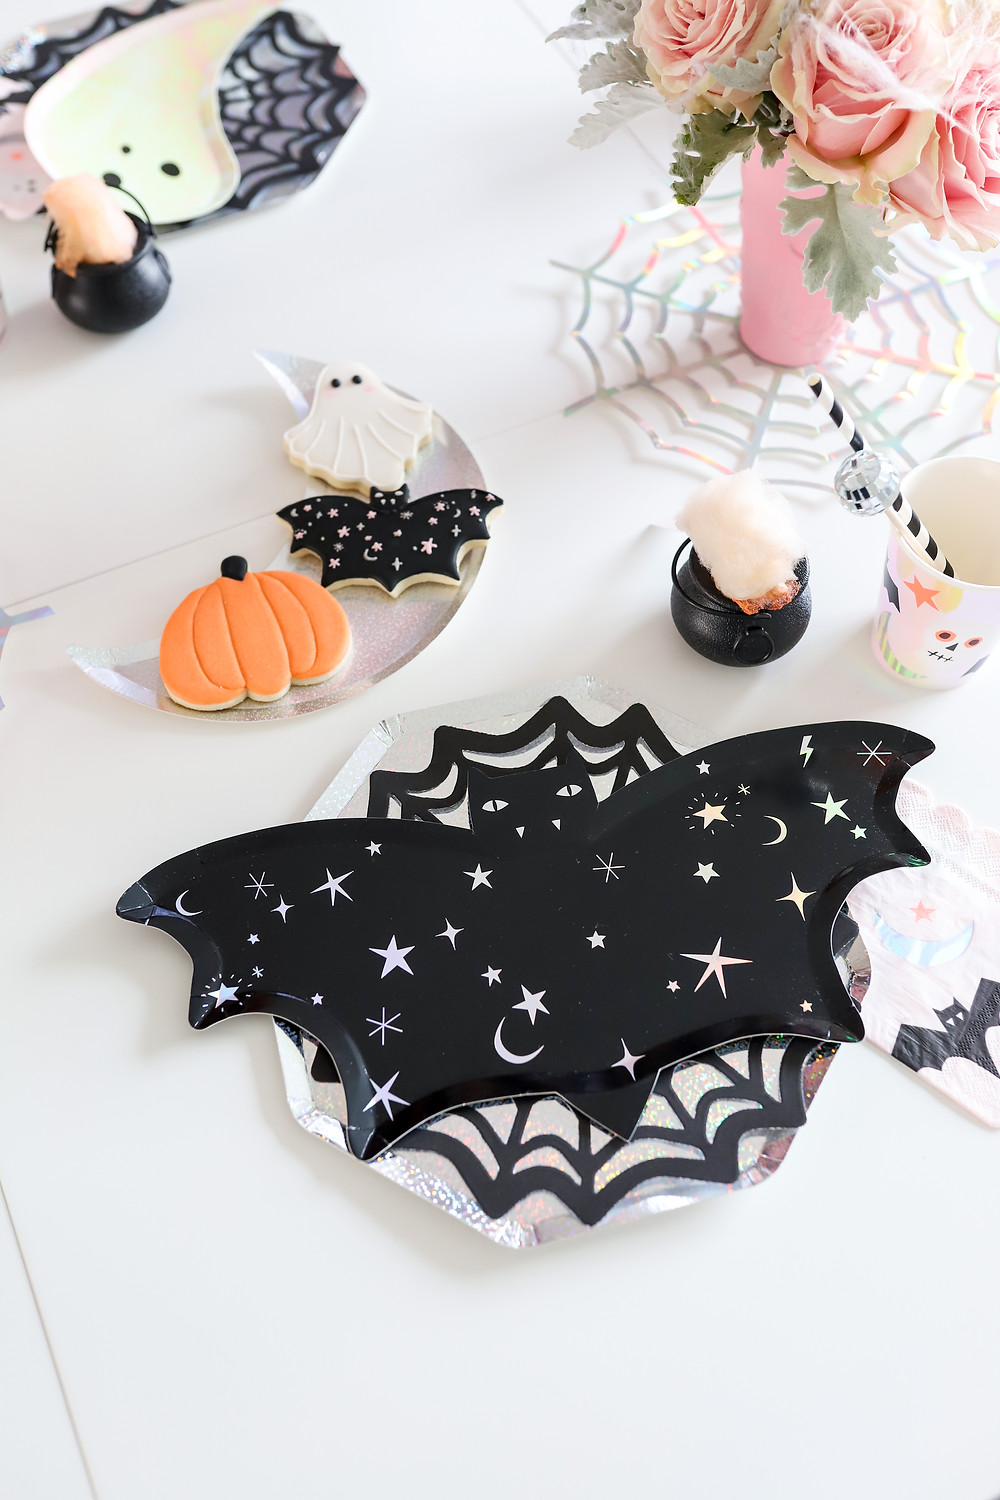 Spooky Halloween treats and decorations for kids party with scary ghost, bat, pumpkin, cauldron and metallic spider webs holding a pink vase with pink roses.